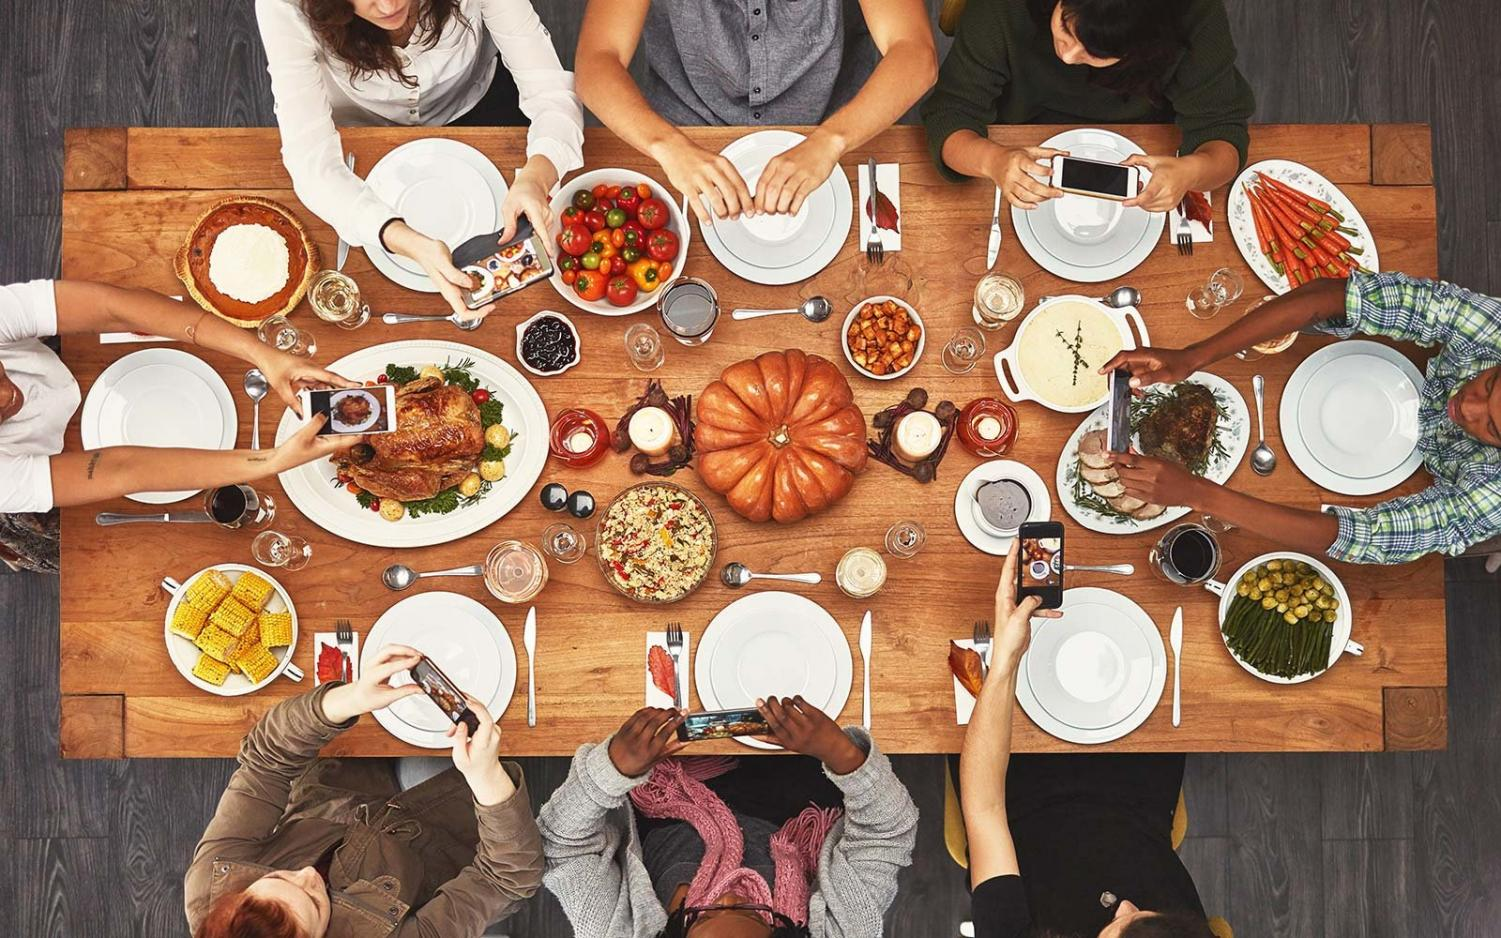 Thanksgiving day is all about preparing the perfect dishes and spending time with family.